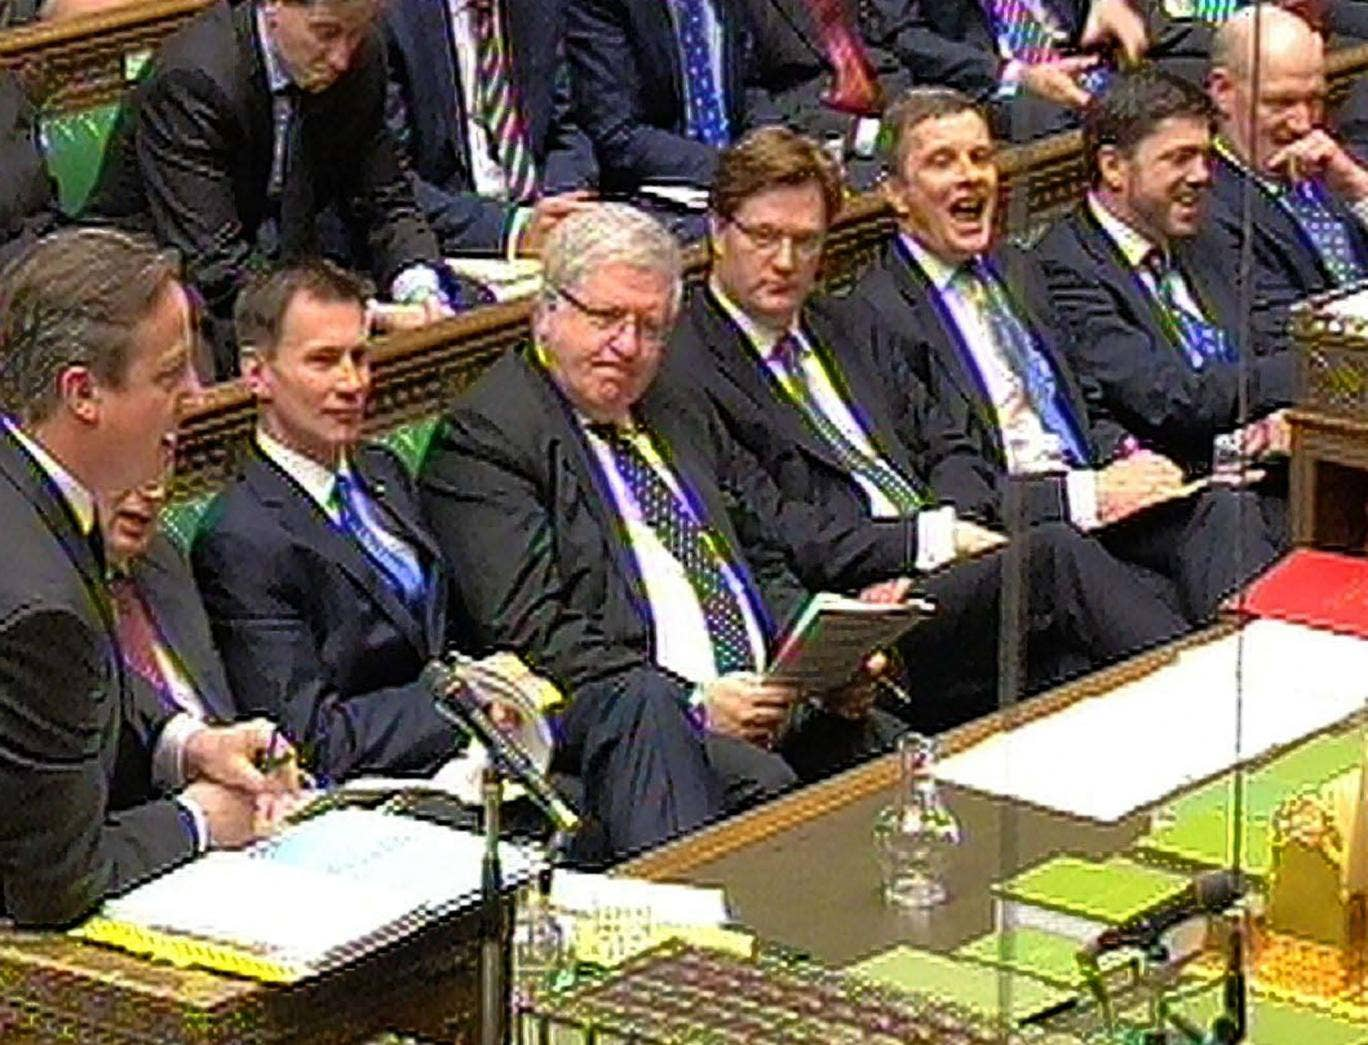 """The sceneduring Prime Minister's Questions in the House of Commons this week. An """"old boys' network"""" was Ed Miliband's description"""